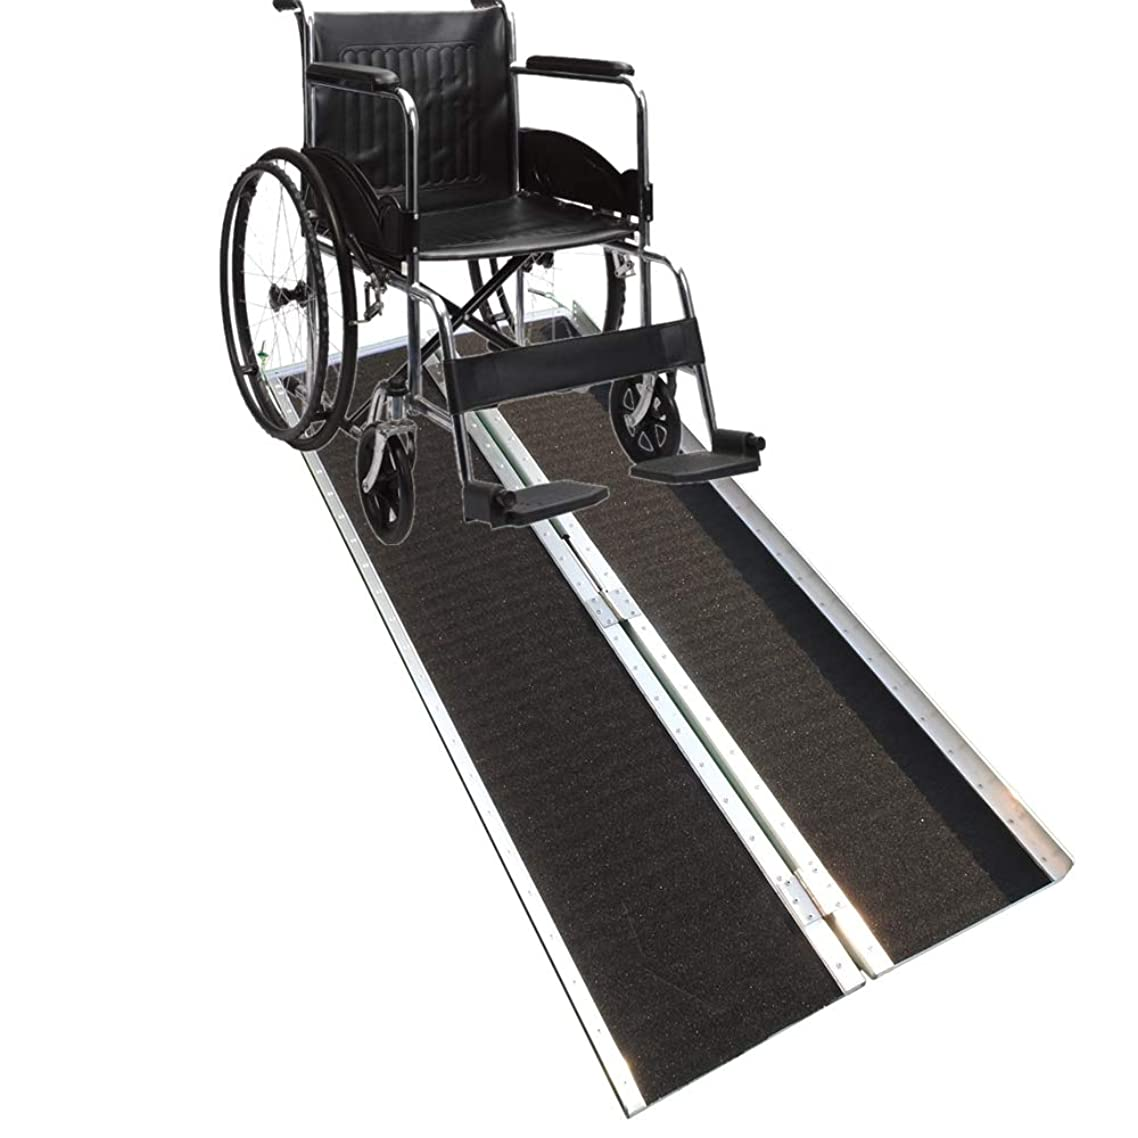 HOBBYN Folding Ramp, 6 Ft Aluminum Wheelchair Loading Traction Ramp, Lightweight Folding Portable, Single Fold Wheelchair Scooter Ramp